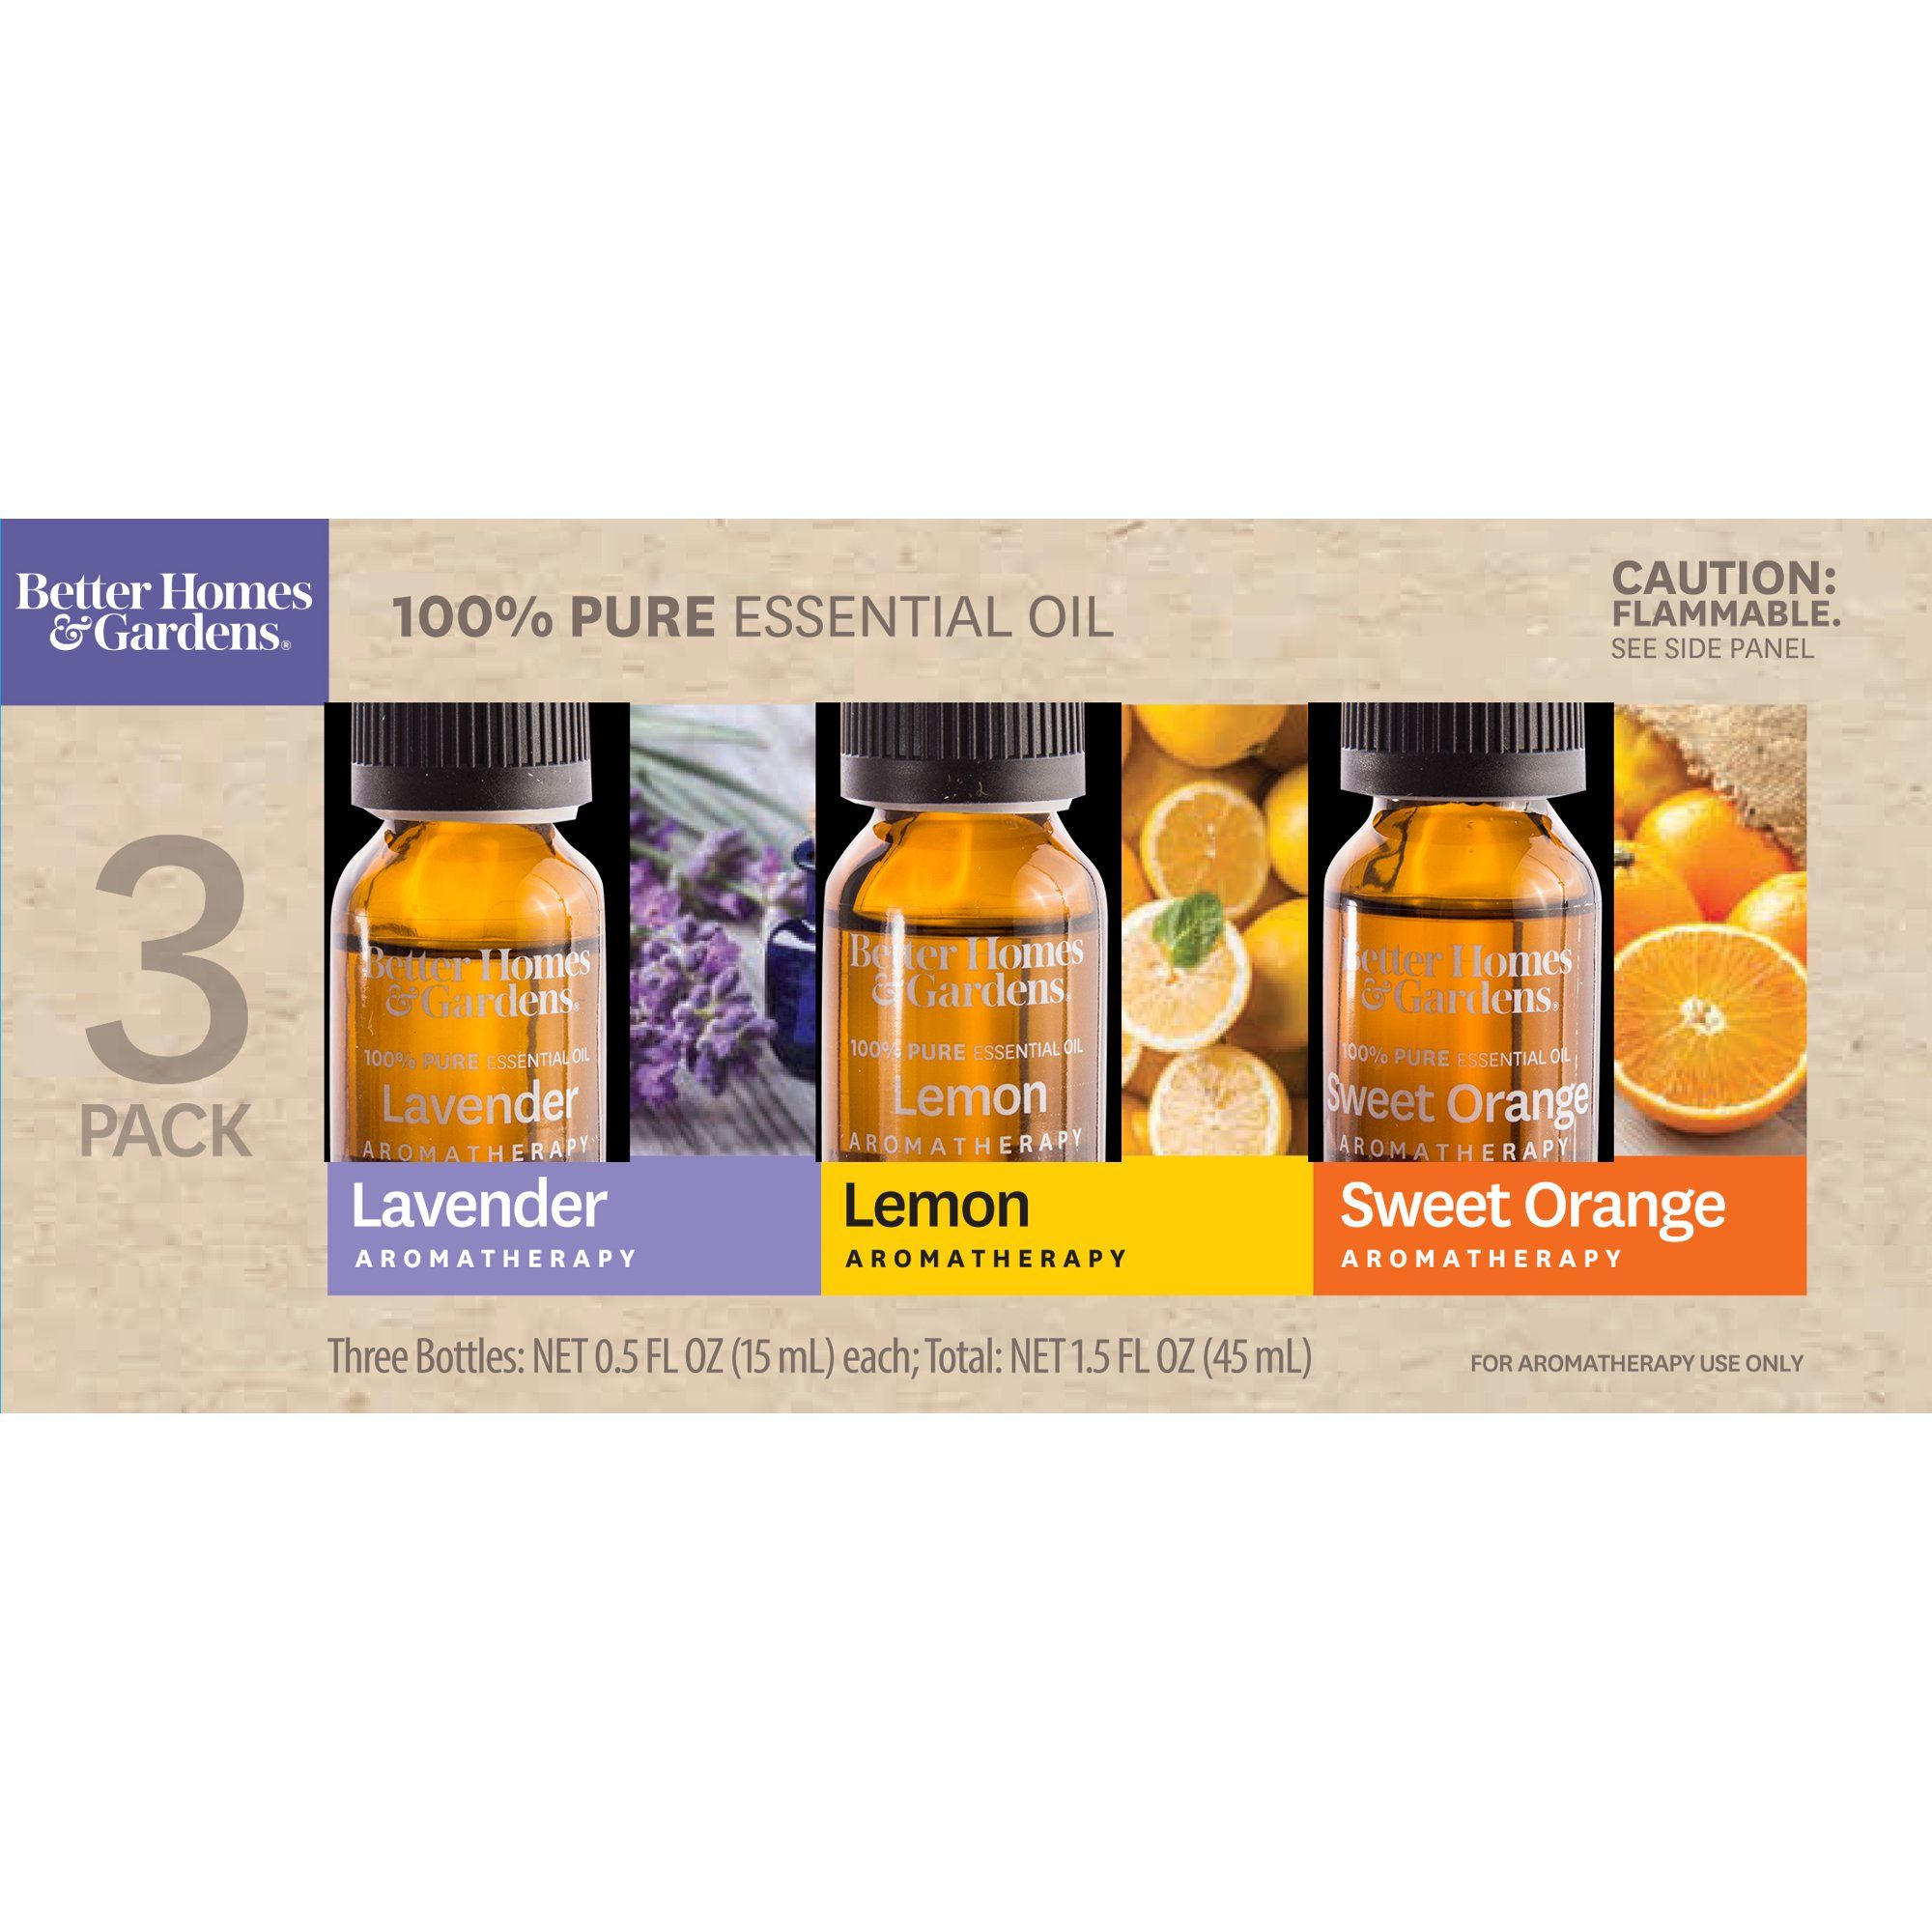 3e5e5a44a1d7ae5a1b87f22503a7697c - Better Homes And Gardens Essential Oils Uses